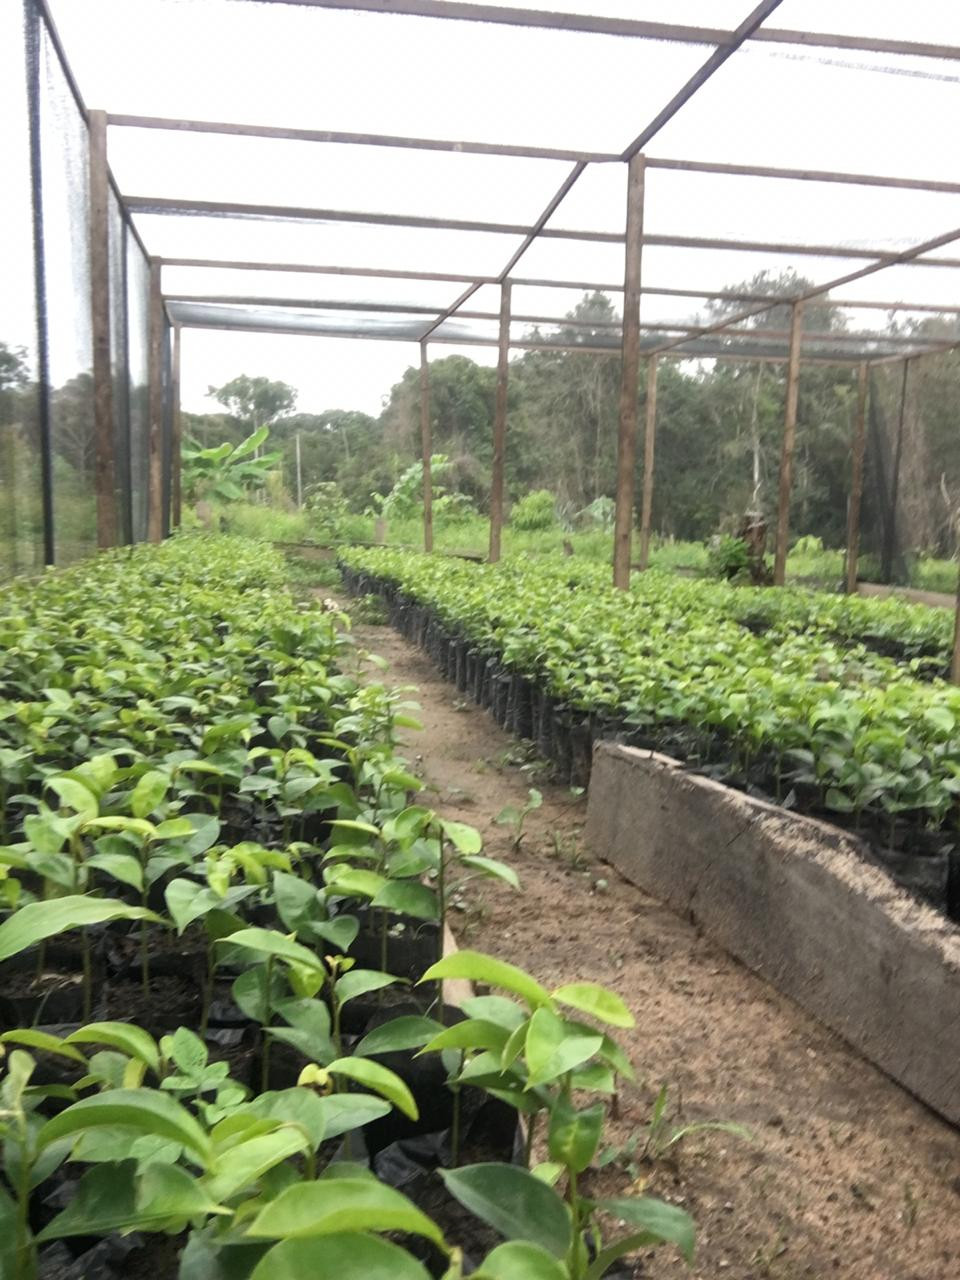 Production of seedlings in Manaus - its-my.money